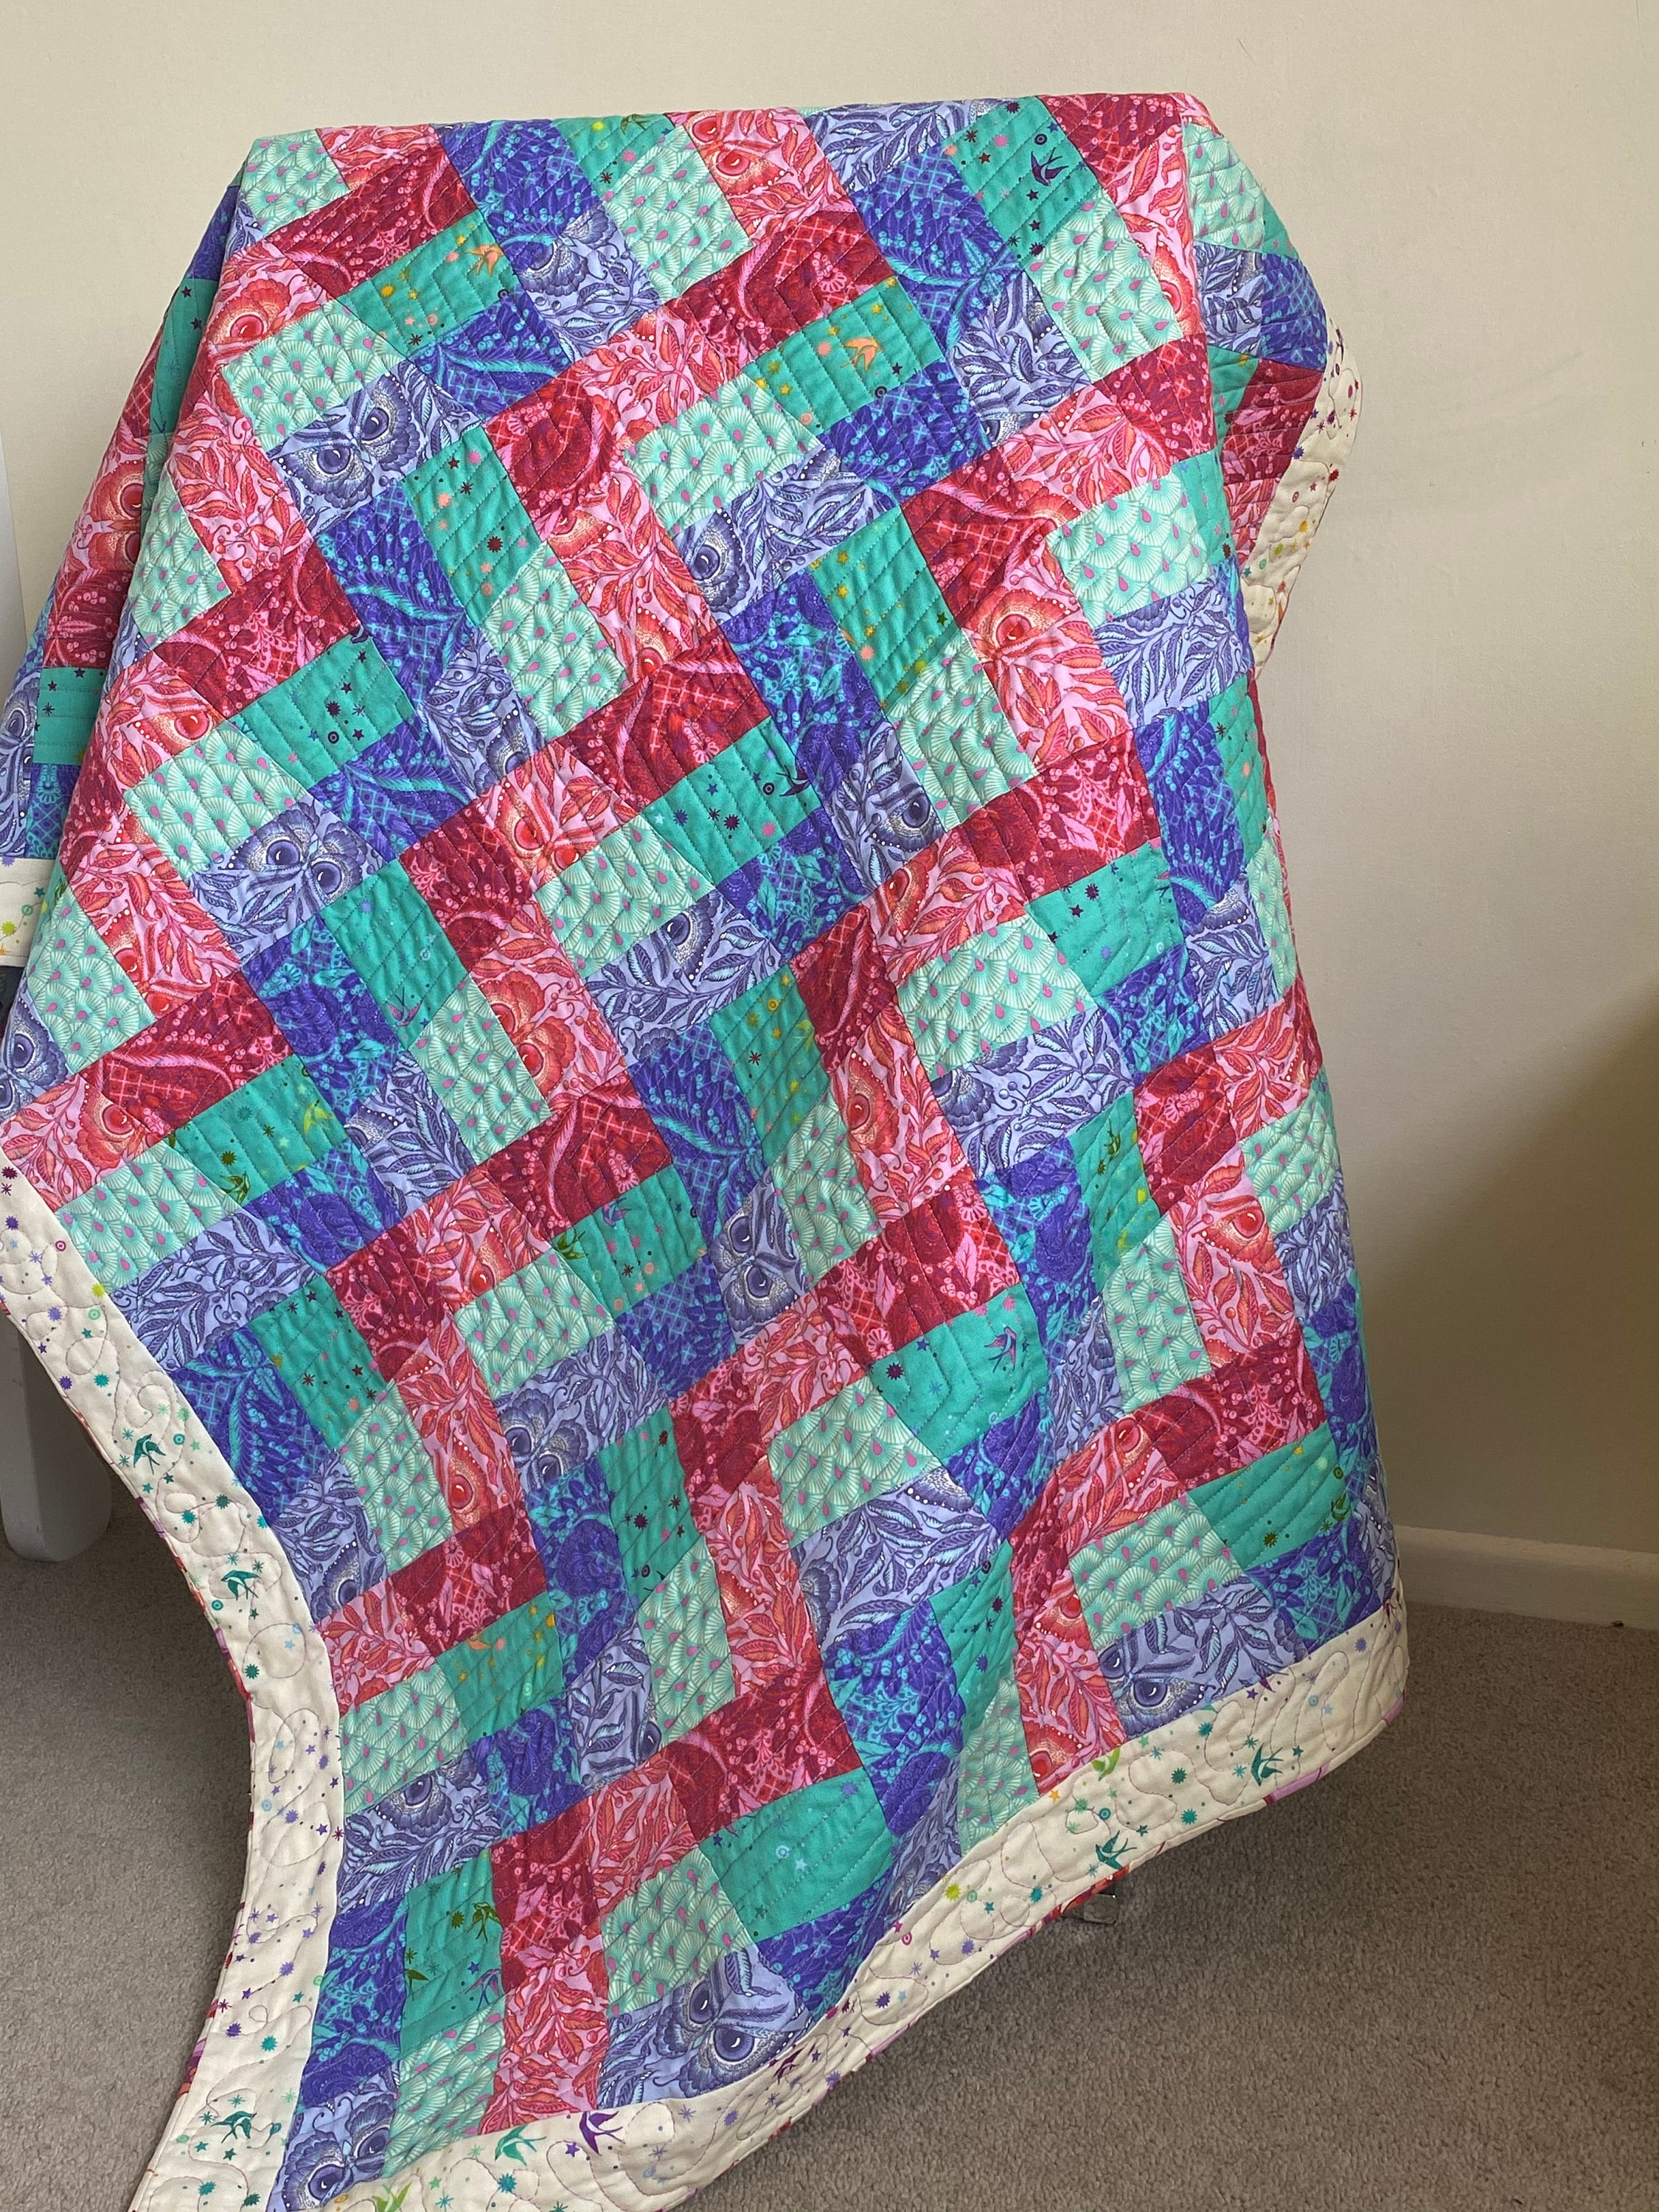 Rail Fence Quilt draped over a stand.